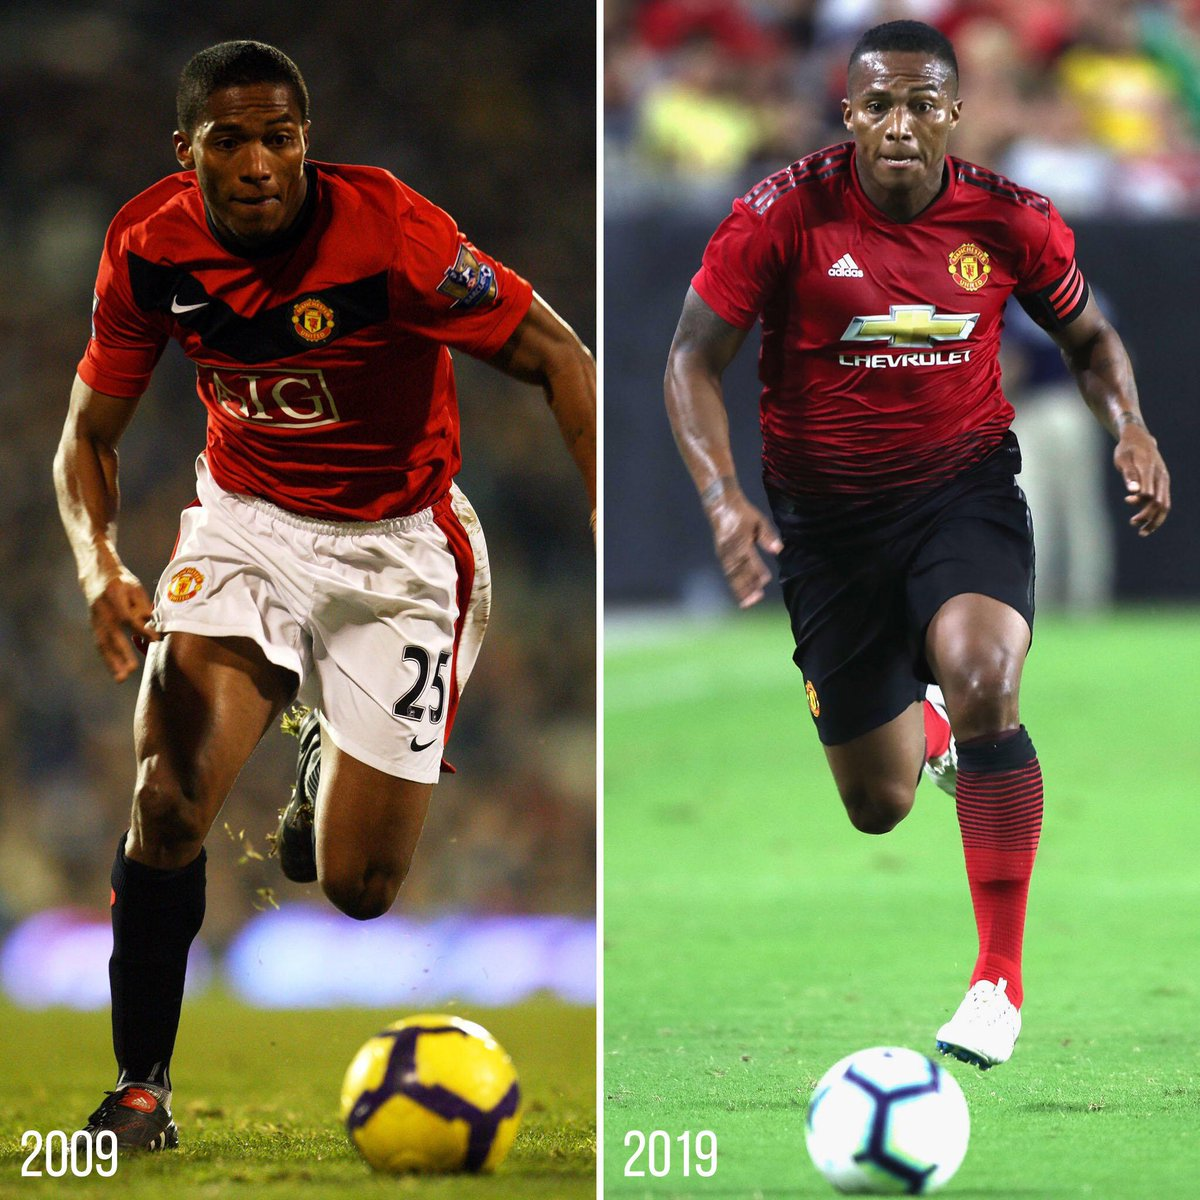 You haven't changed a bit, @Anto_V25 😉 #10YearChallenge #MUFC